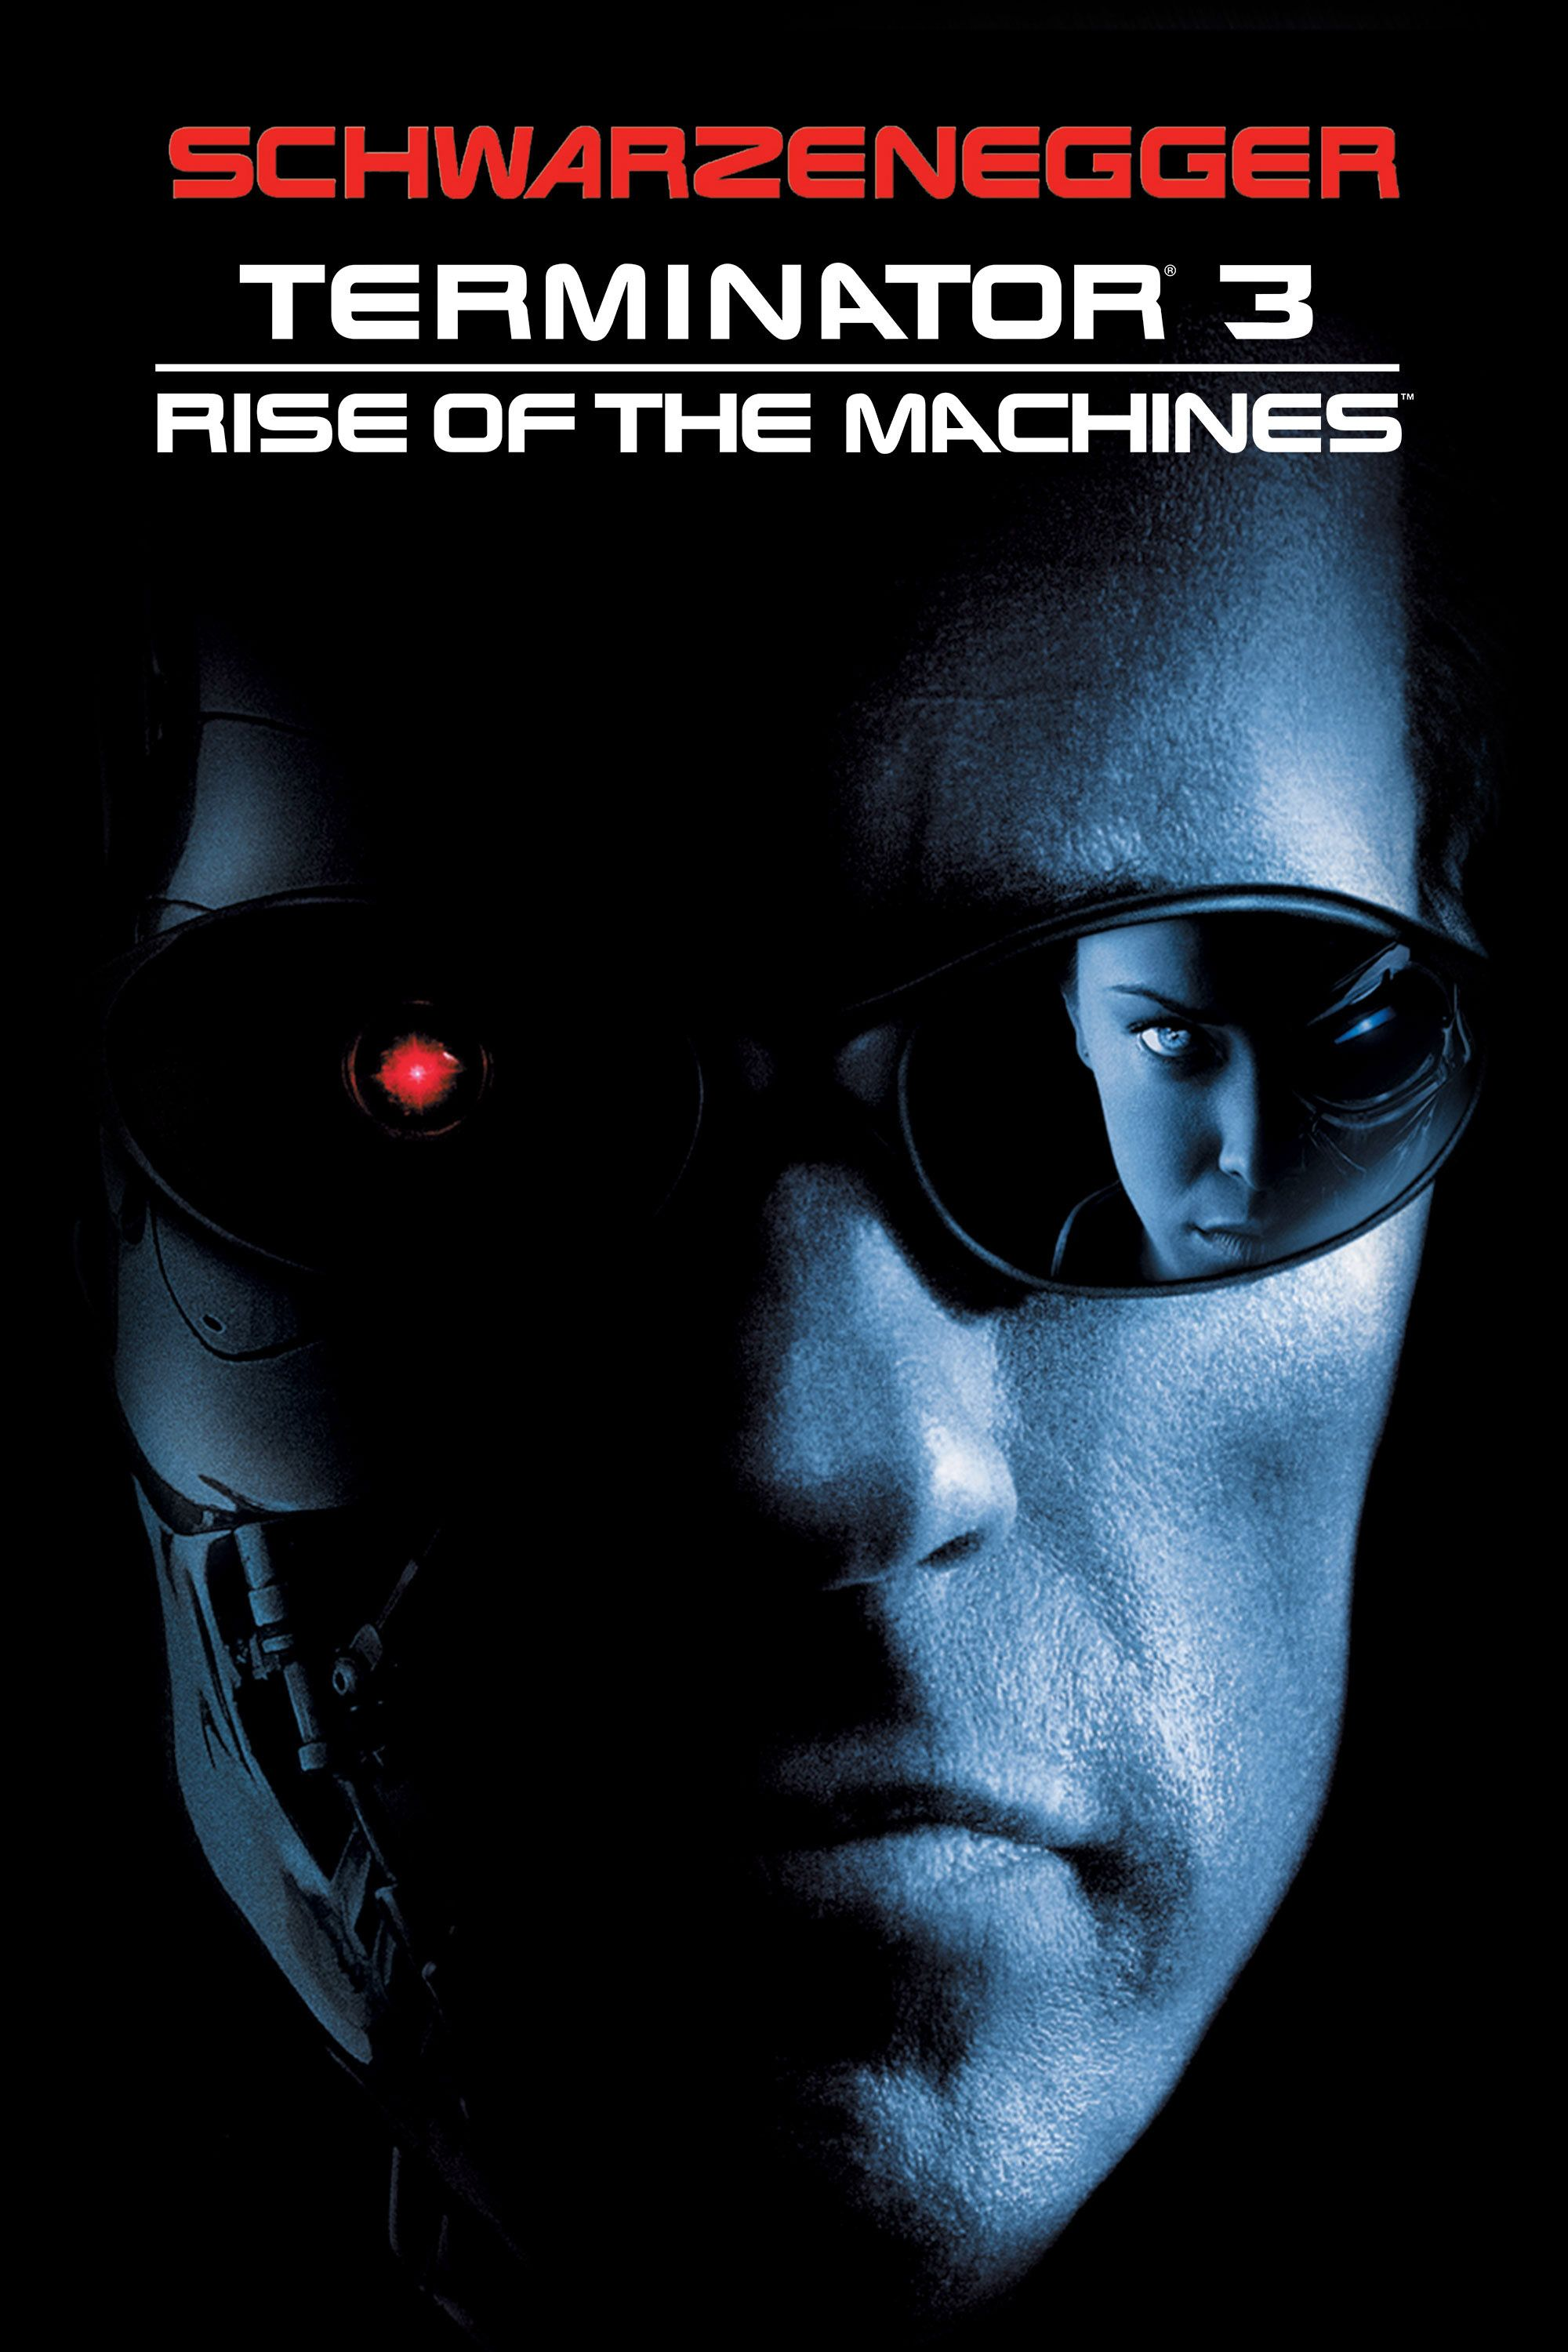 Review: Terminator 3: Rise of the Machines